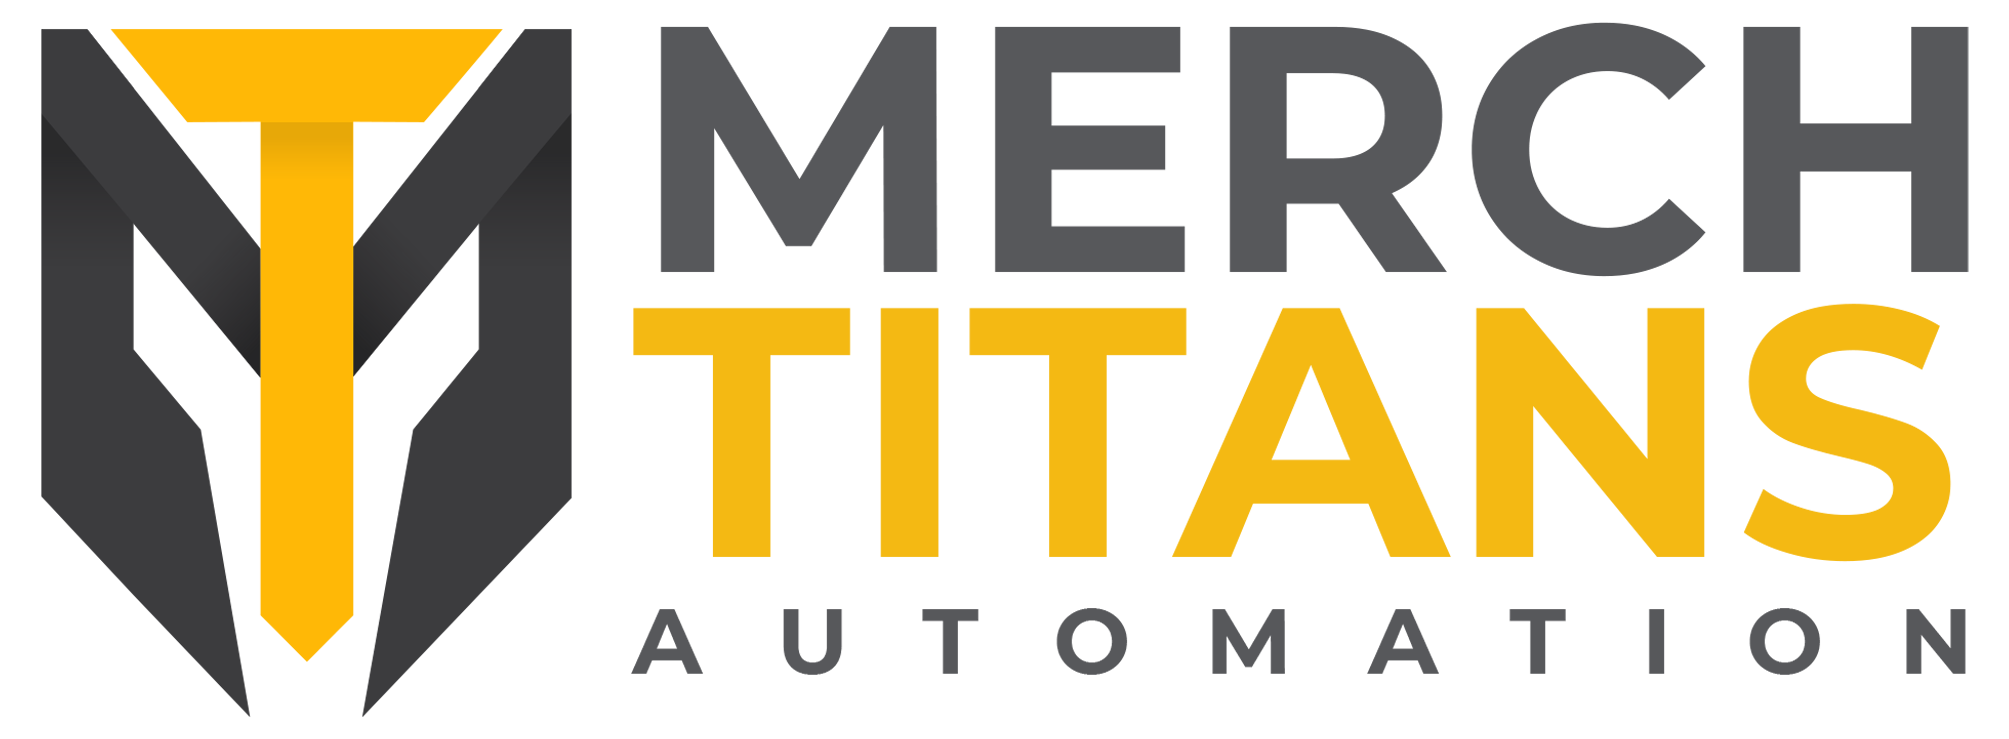 Merch Titans Automation - Print on Demand Upload Automation